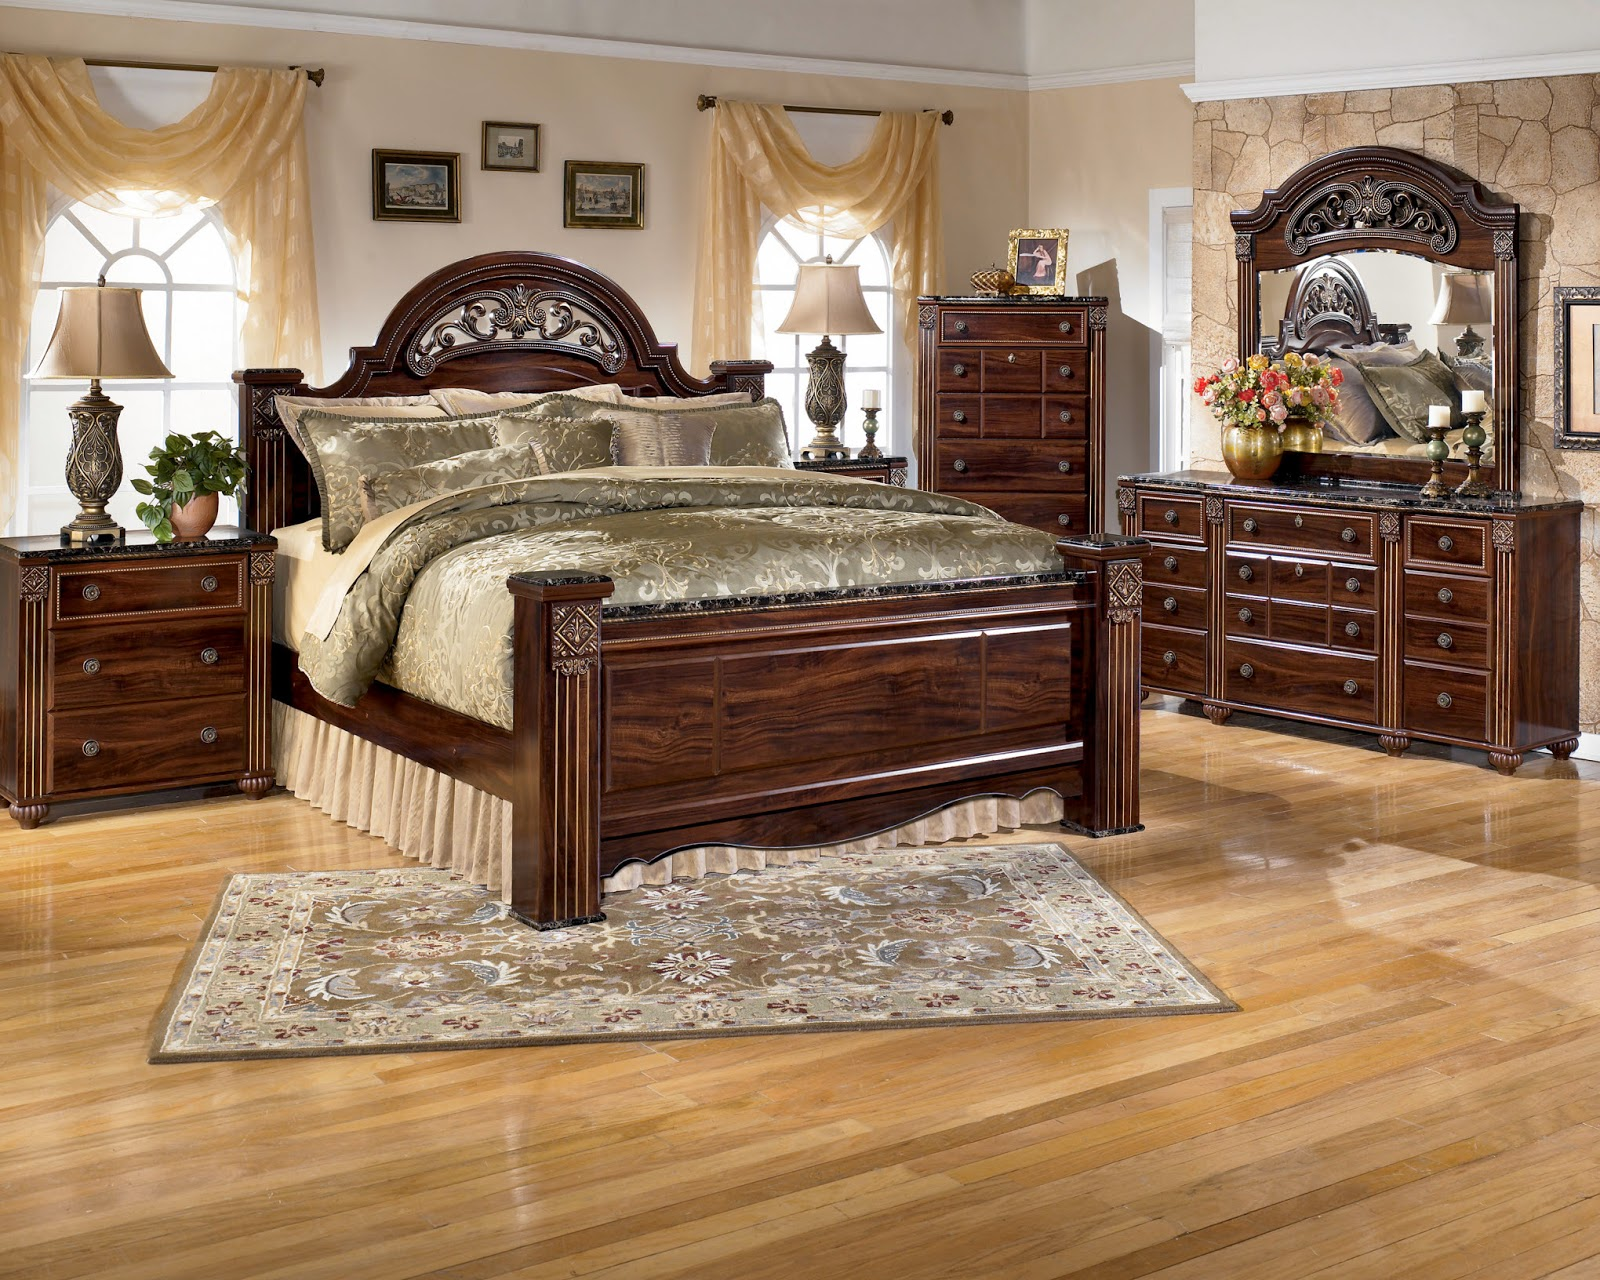 Ashley Furniture Bedroom Set Sale Via